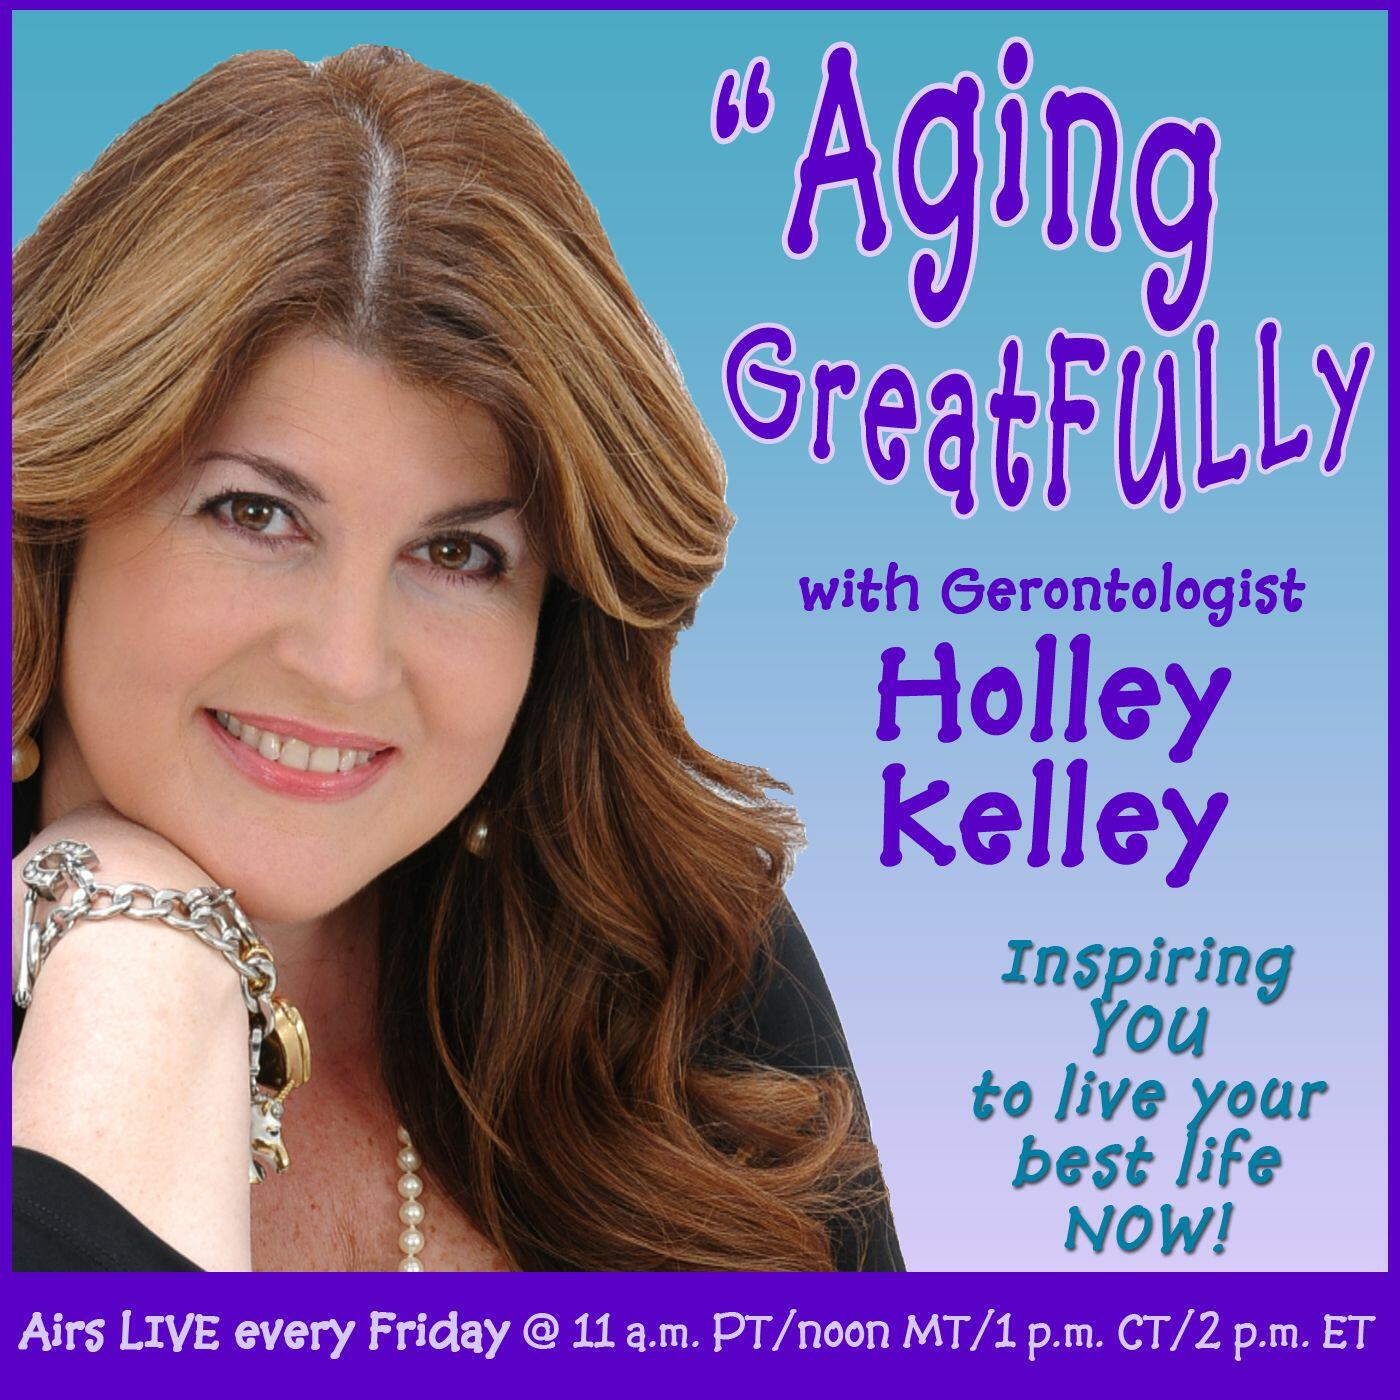 Listen to Purpose Driven Living & Harvesting Happiness | Aging GreatFULLy with Holley Kelley | Podcasts